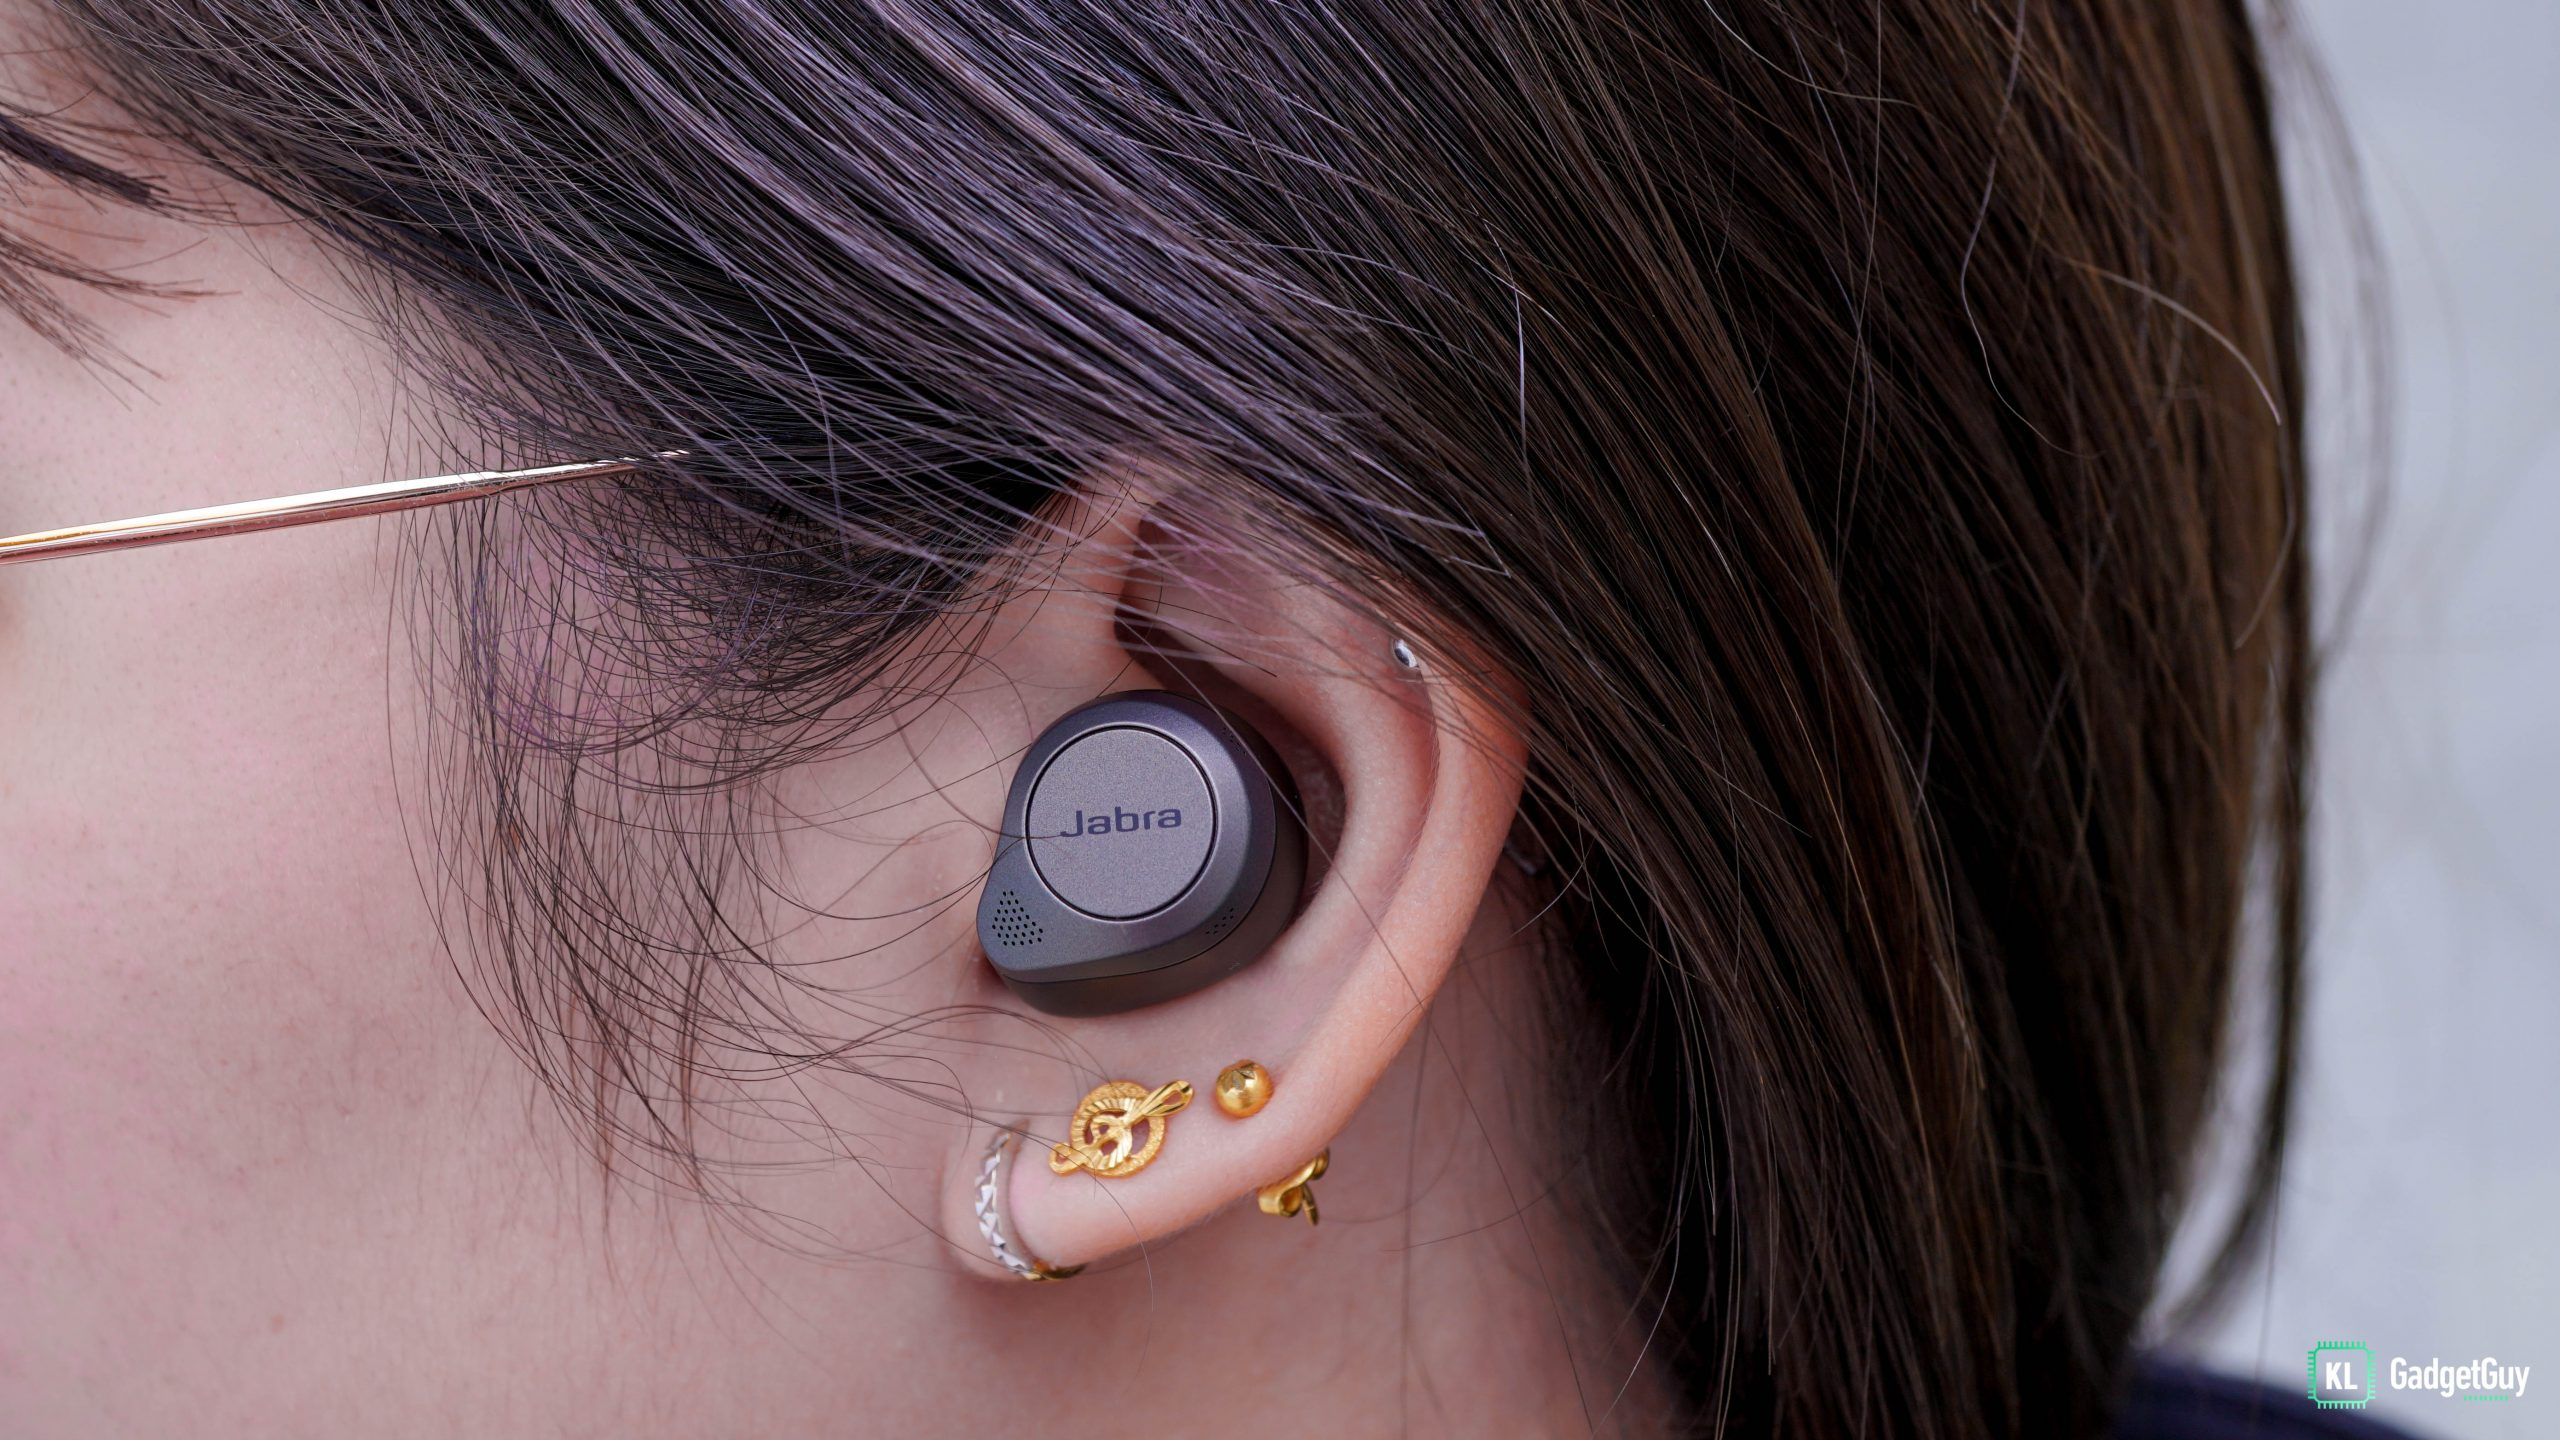 Jabra Elite 85t Review: The true AirPods Pro competitor 4